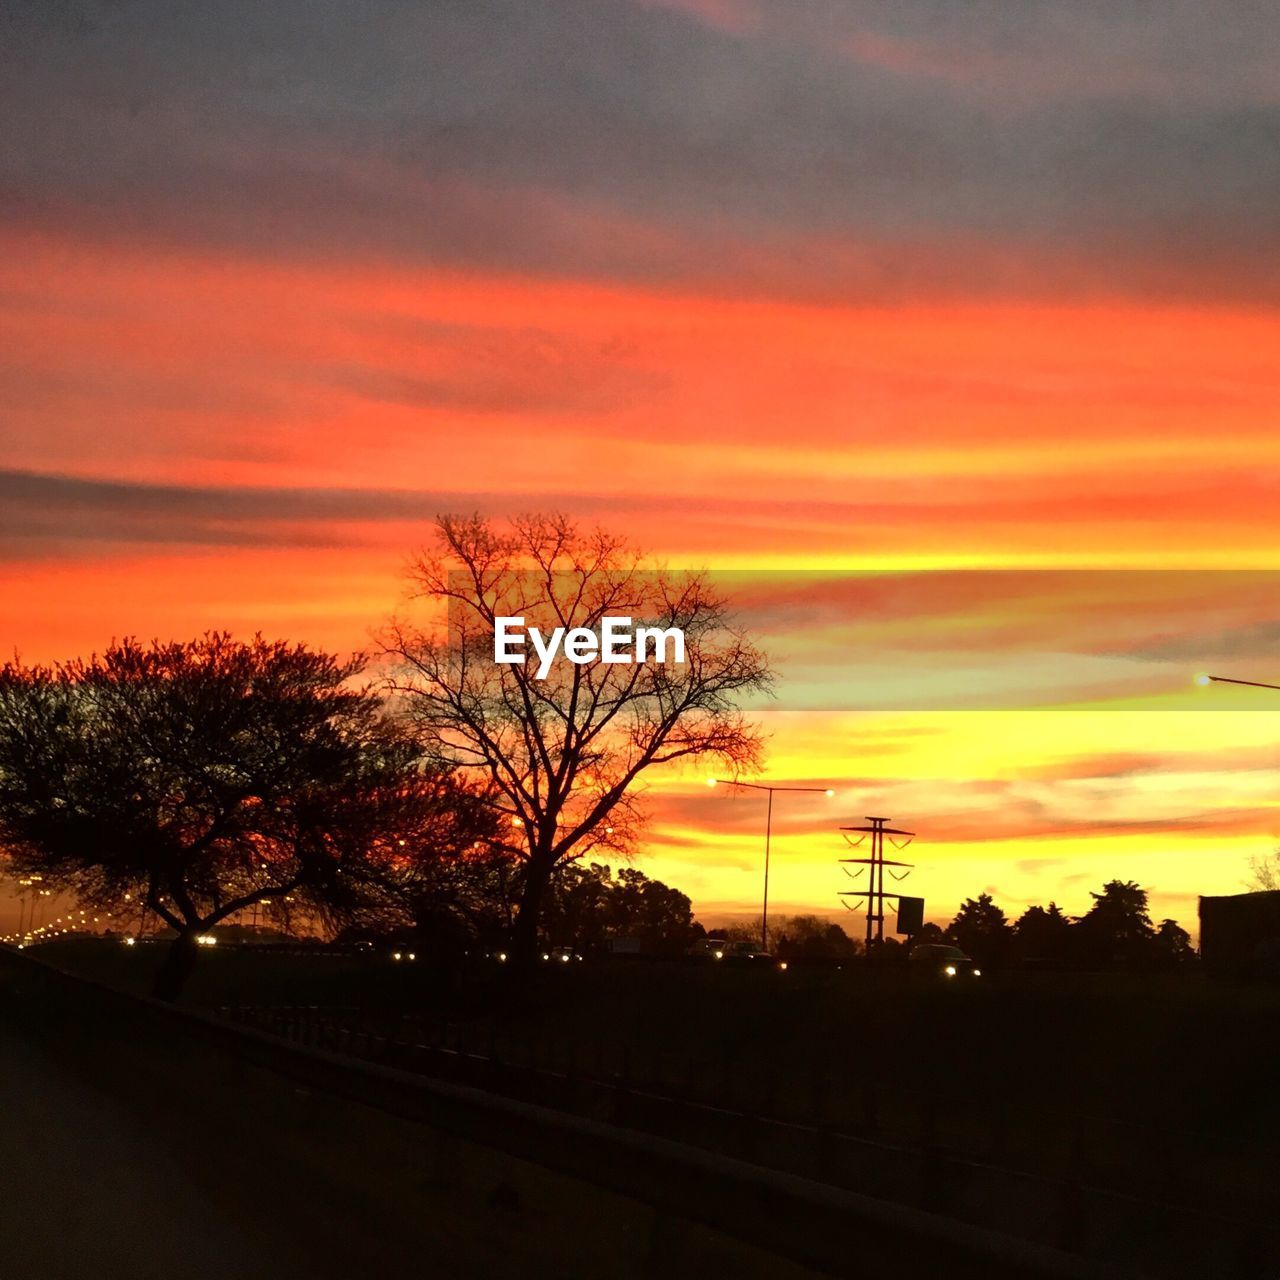 sunset, orange color, tree, silhouette, sky, dramatic sky, cloud - sky, no people, nature, beauty in nature, scenics, tranquil scene, transportation, road, tranquility, outdoors, electricity pylon, landscape, day